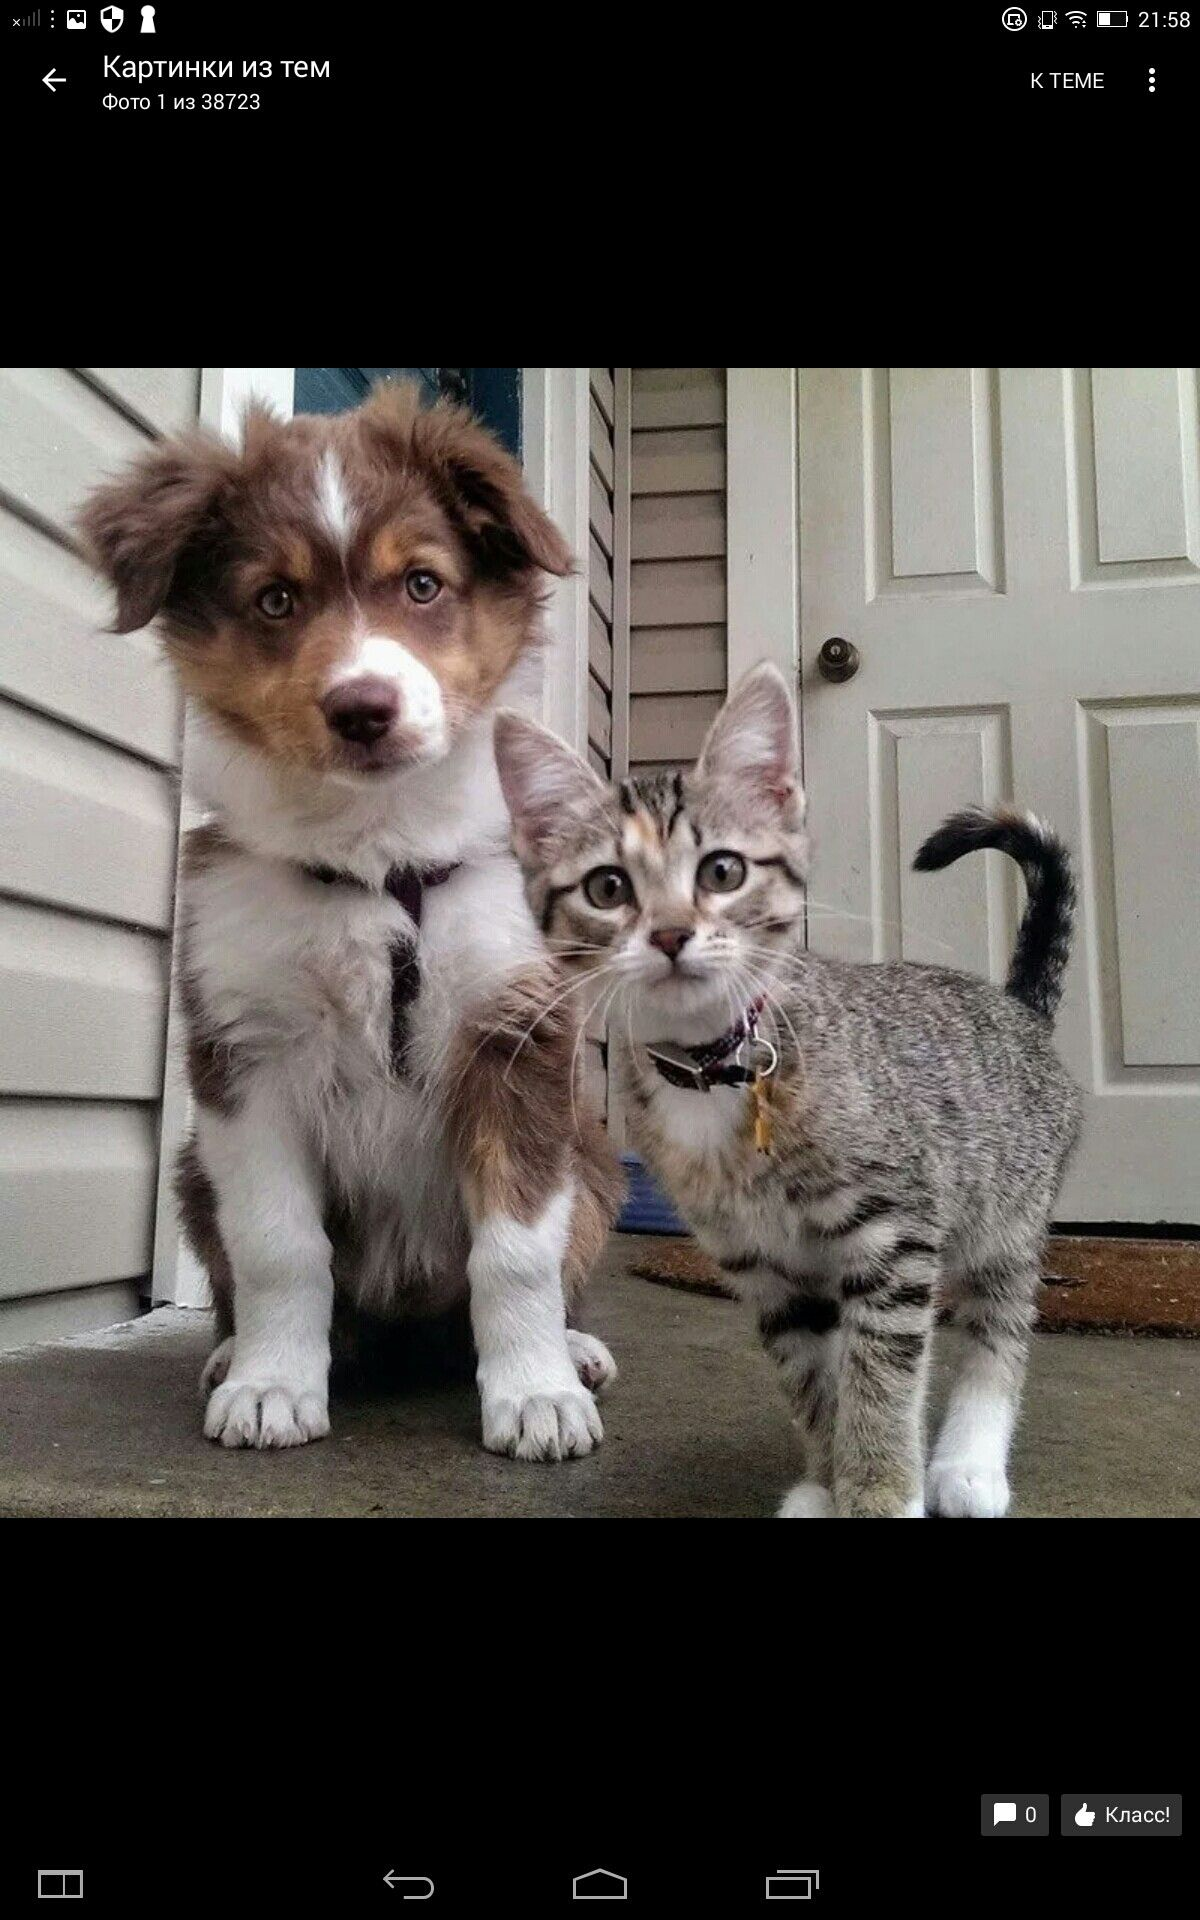 Pin By Tefi Os On Cats And Others Cute Animals Animals Friends Cute Dogs